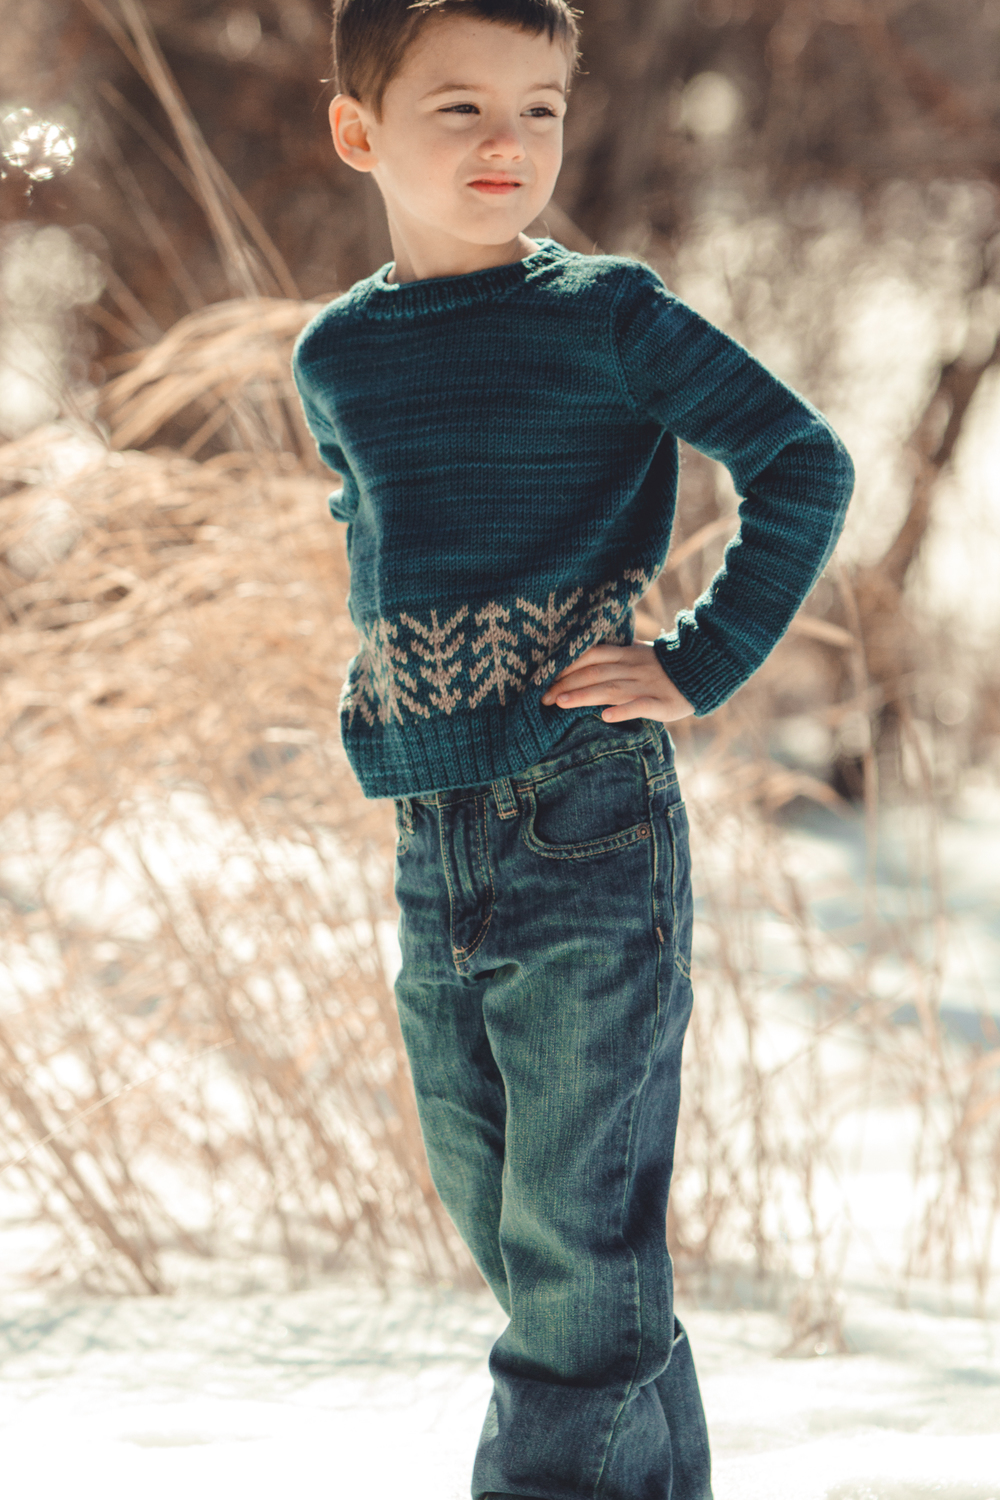 Lodgepole Pullover, in Aspen Sport, Marine and Mushroom colorways